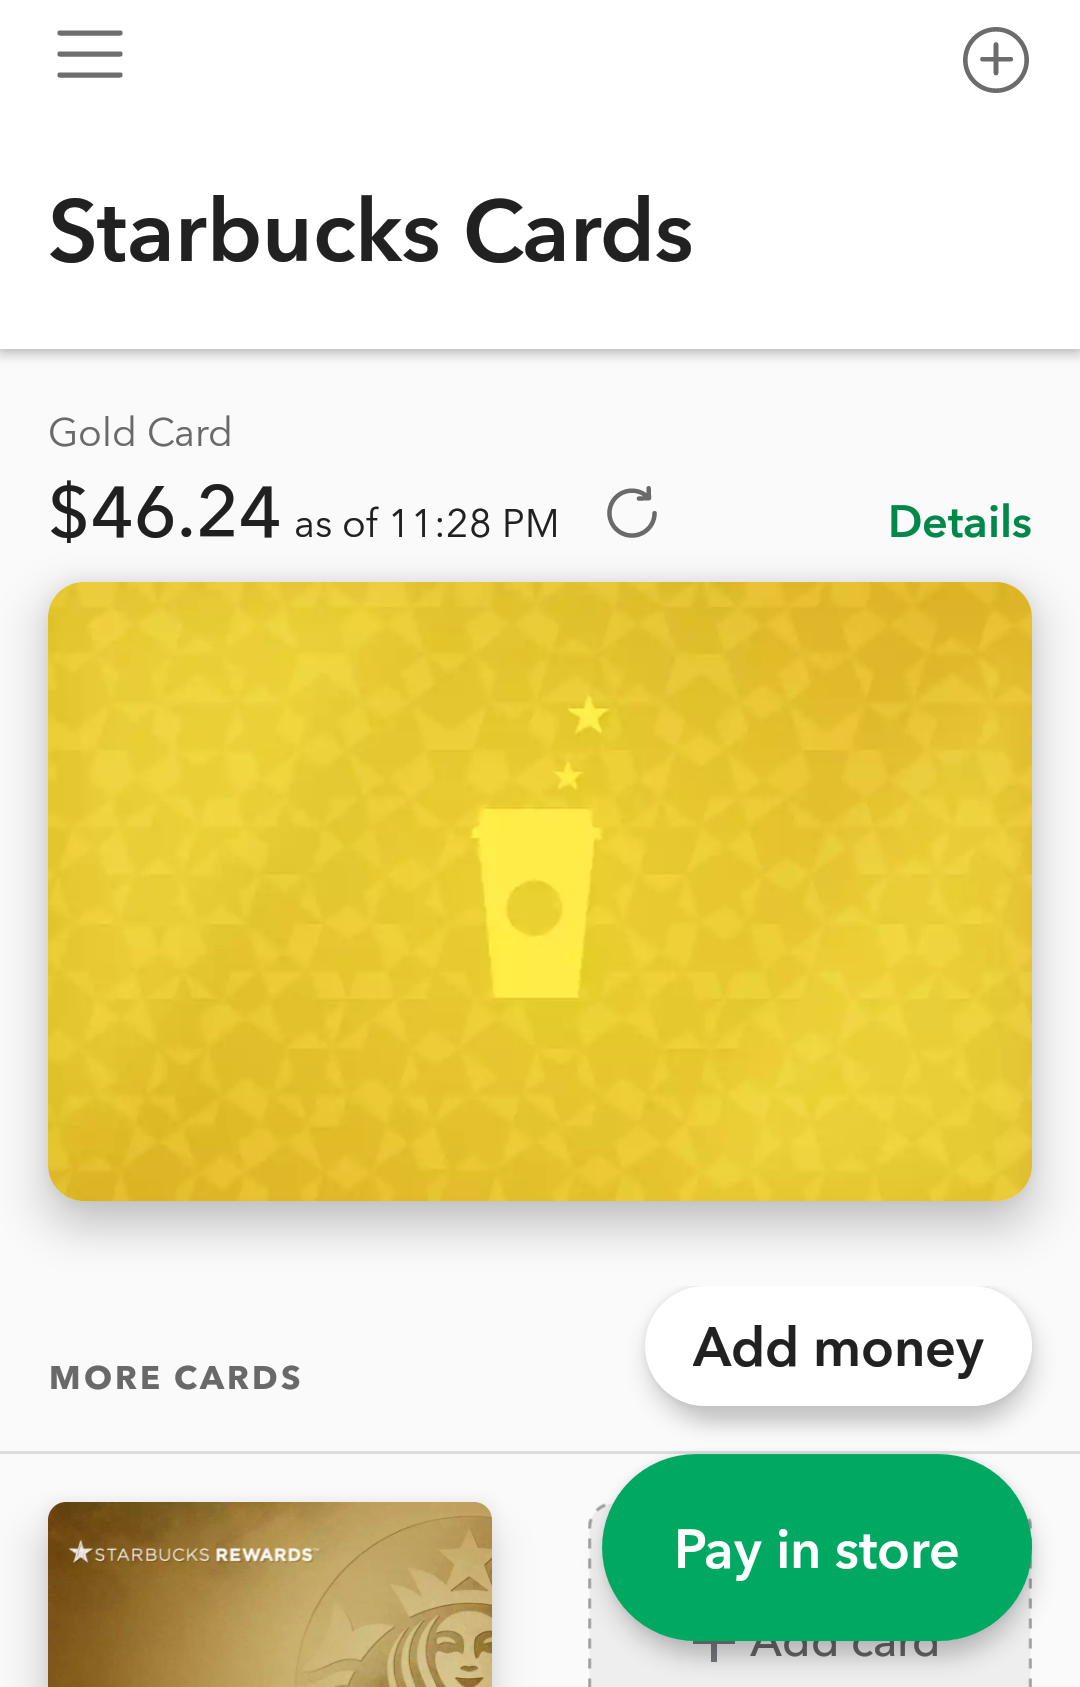 starbucks cards app